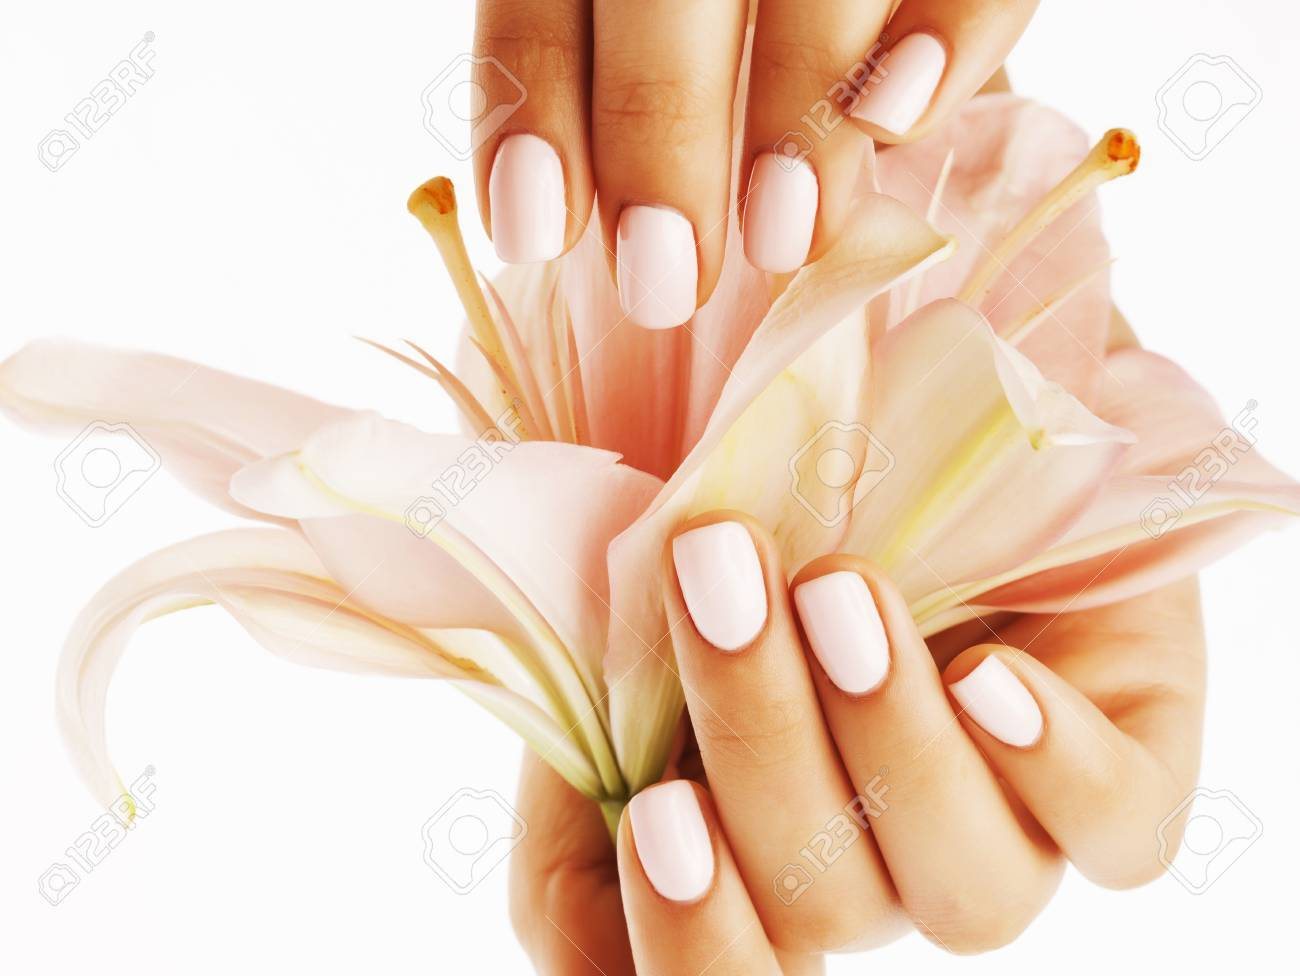 Beauty delicate hands with manicure holding flower lily close beauty delicate hands with manicure holding flower lily close up isolated on white perfect shape stock izmirmasajfo